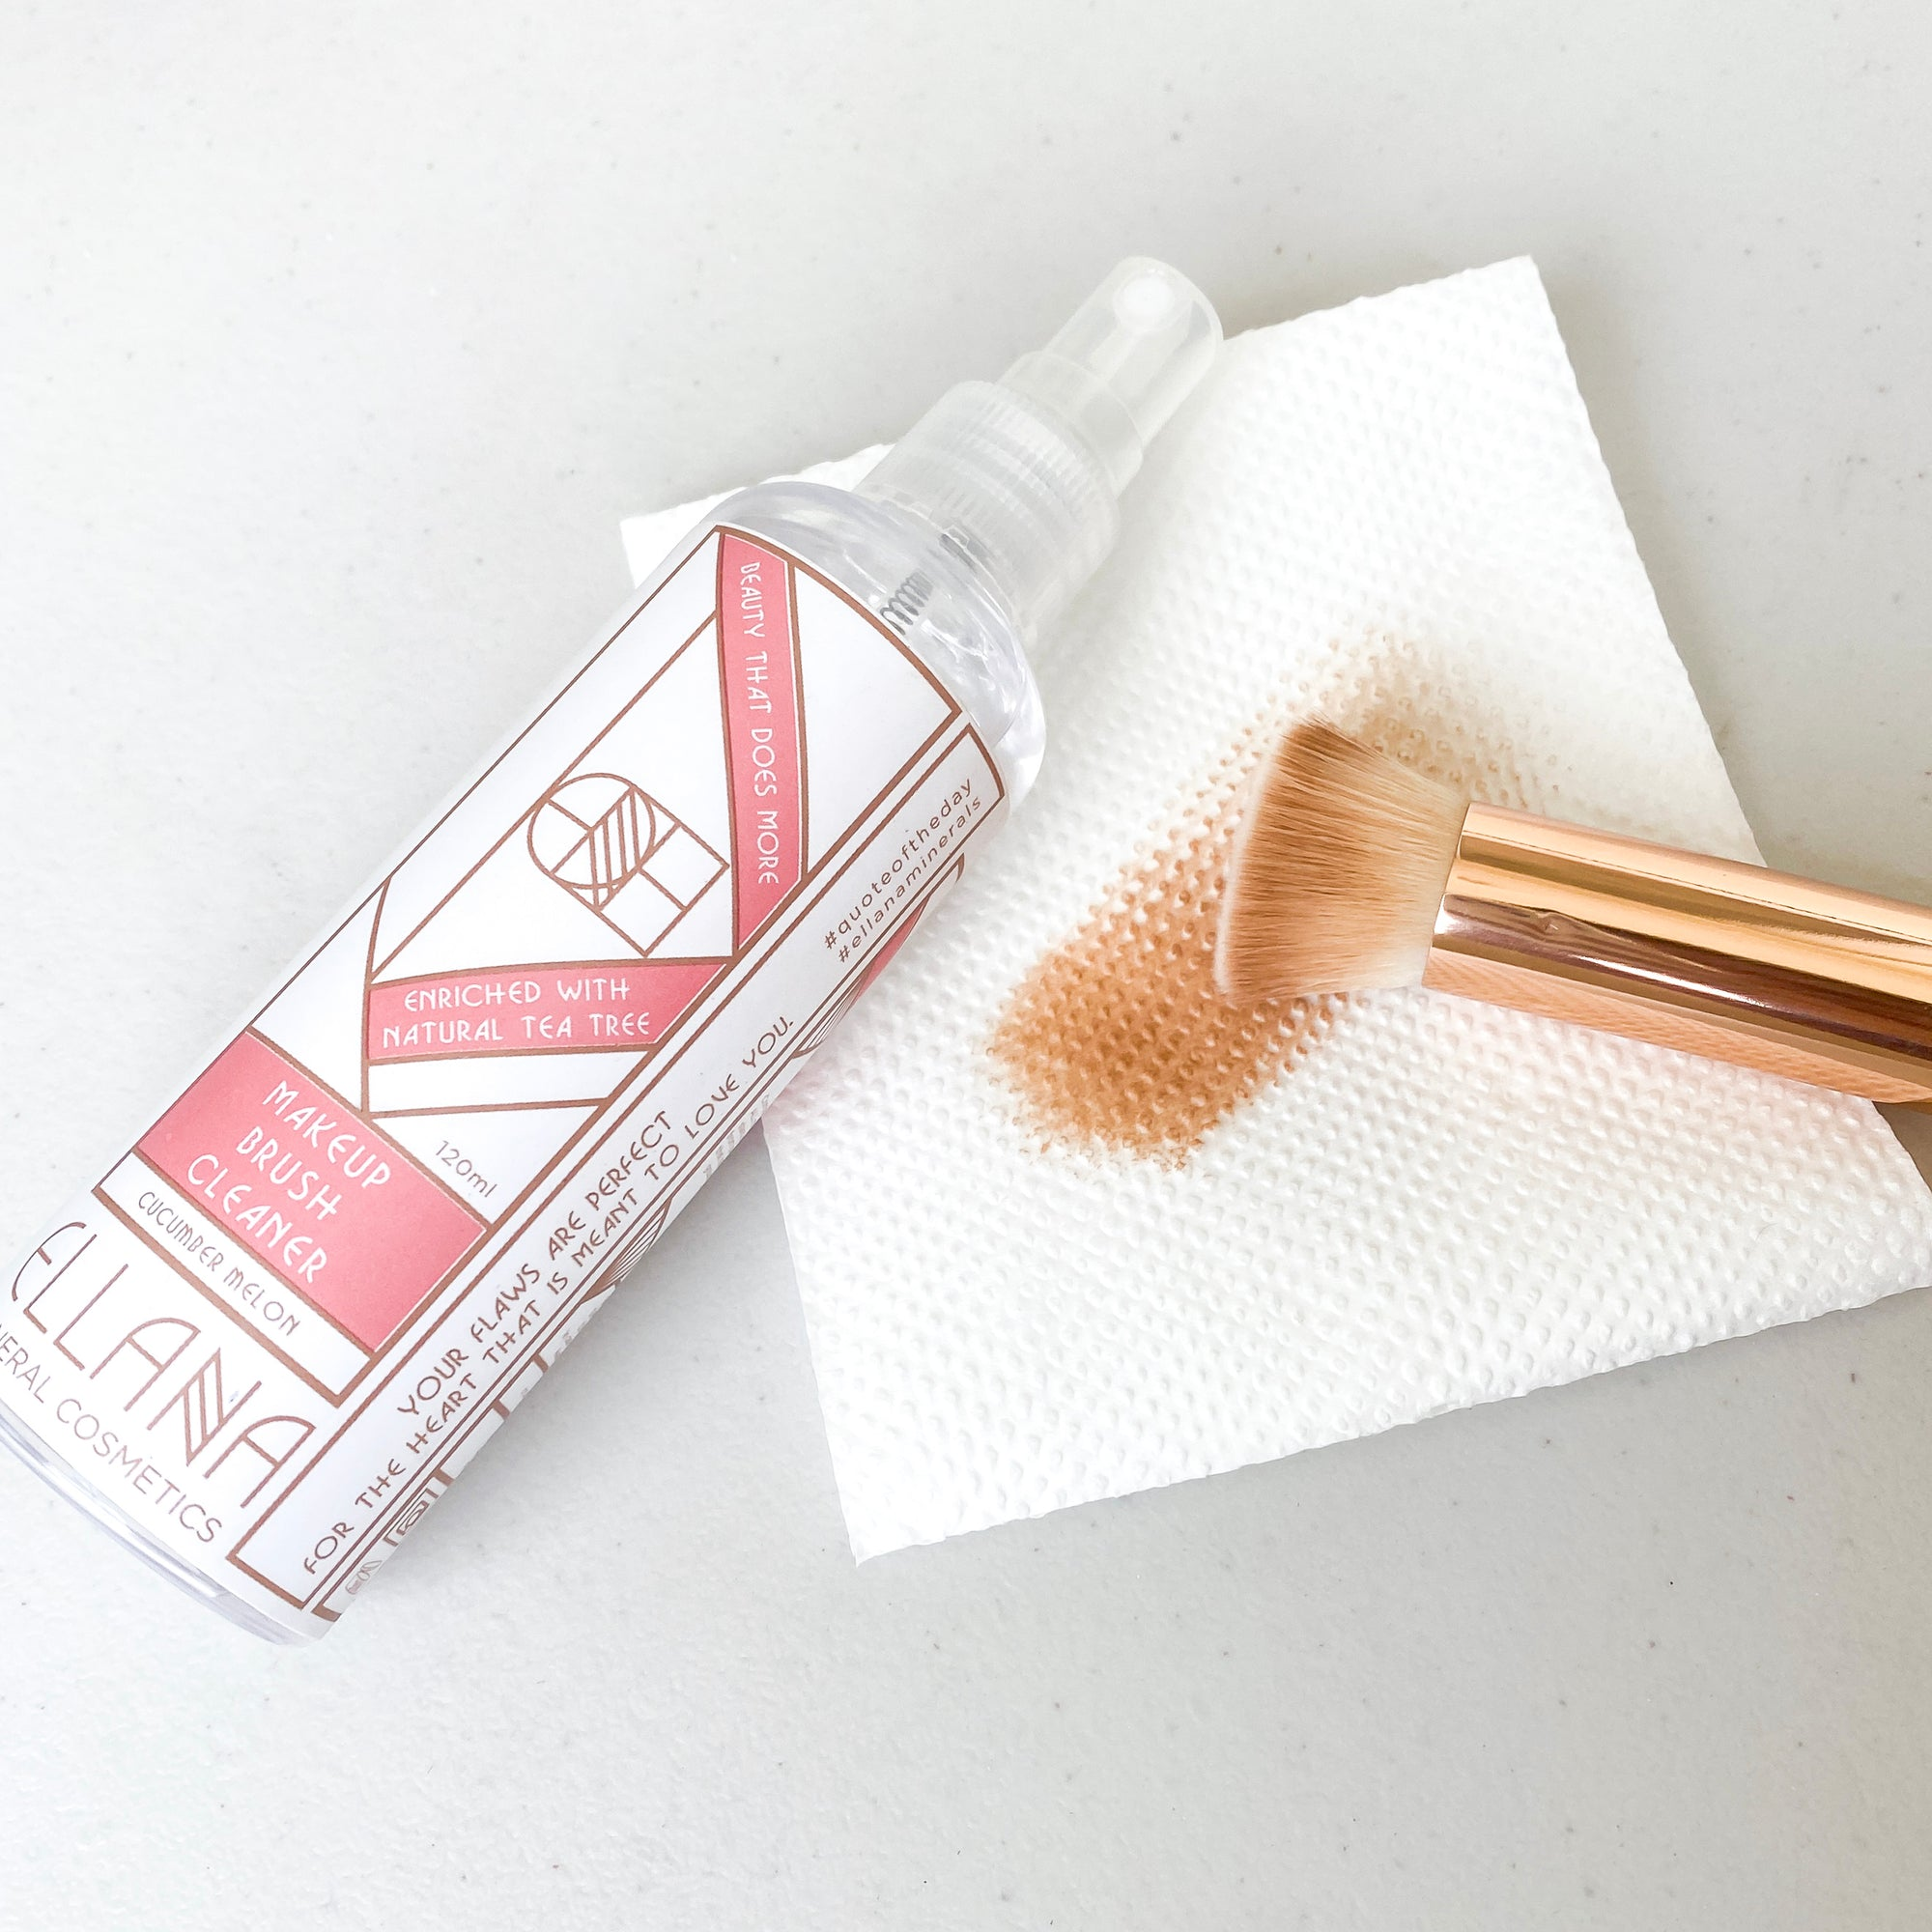 Keep clean with the Ellana Instant-Dry Makeup Brush Cleaner.